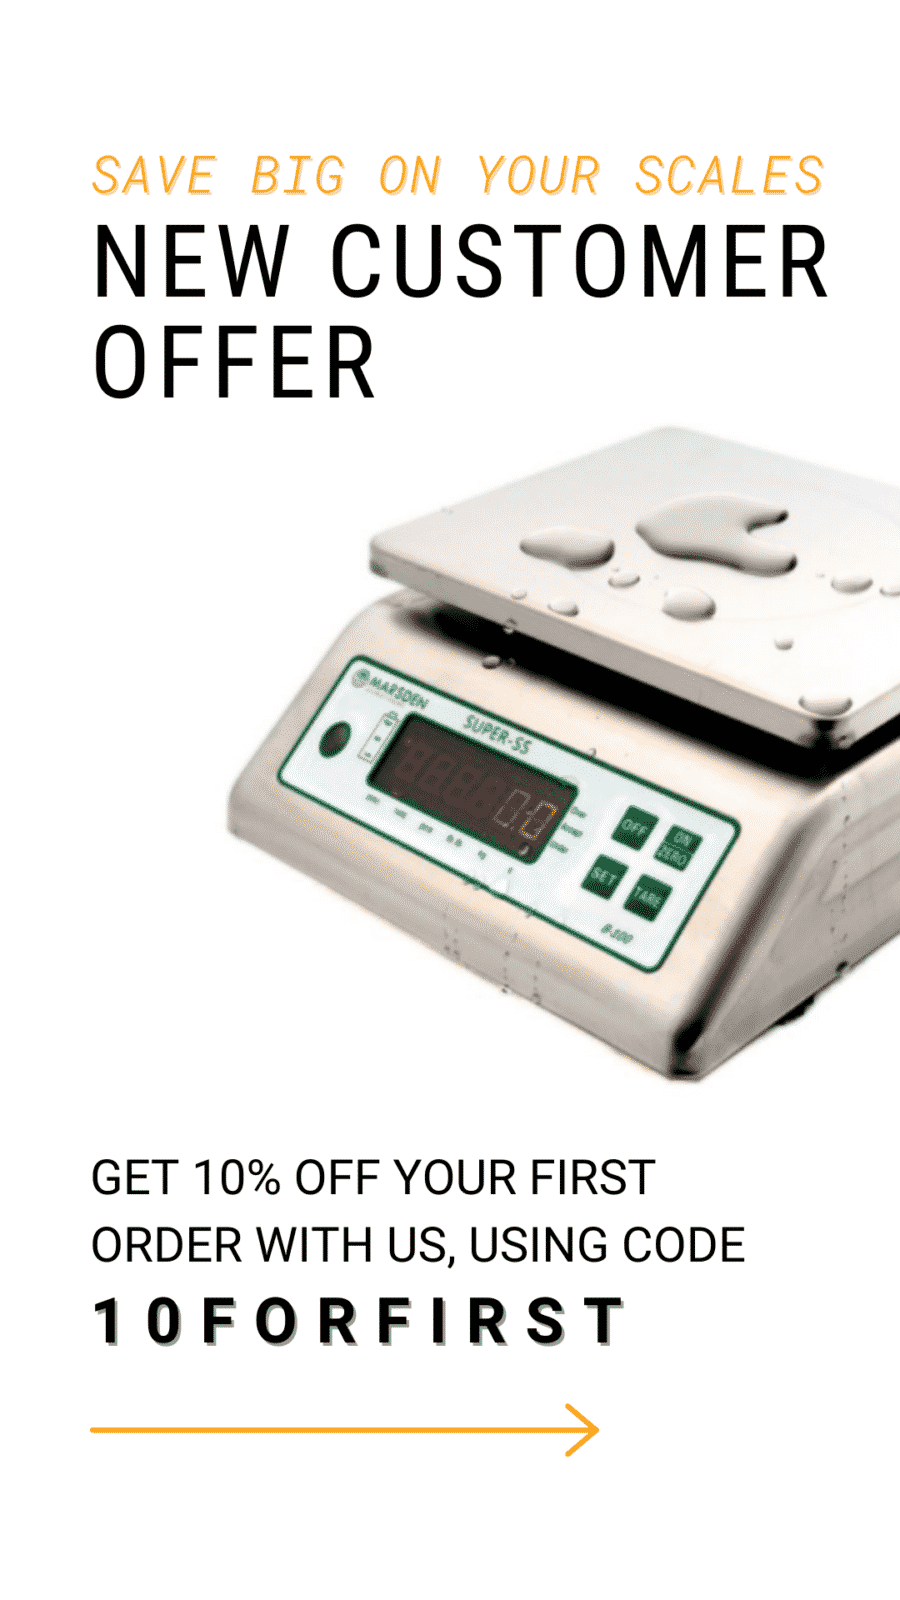 New Customer Offer! Get 10% OFF Your First Order With Us Using Code 10FORFIRST